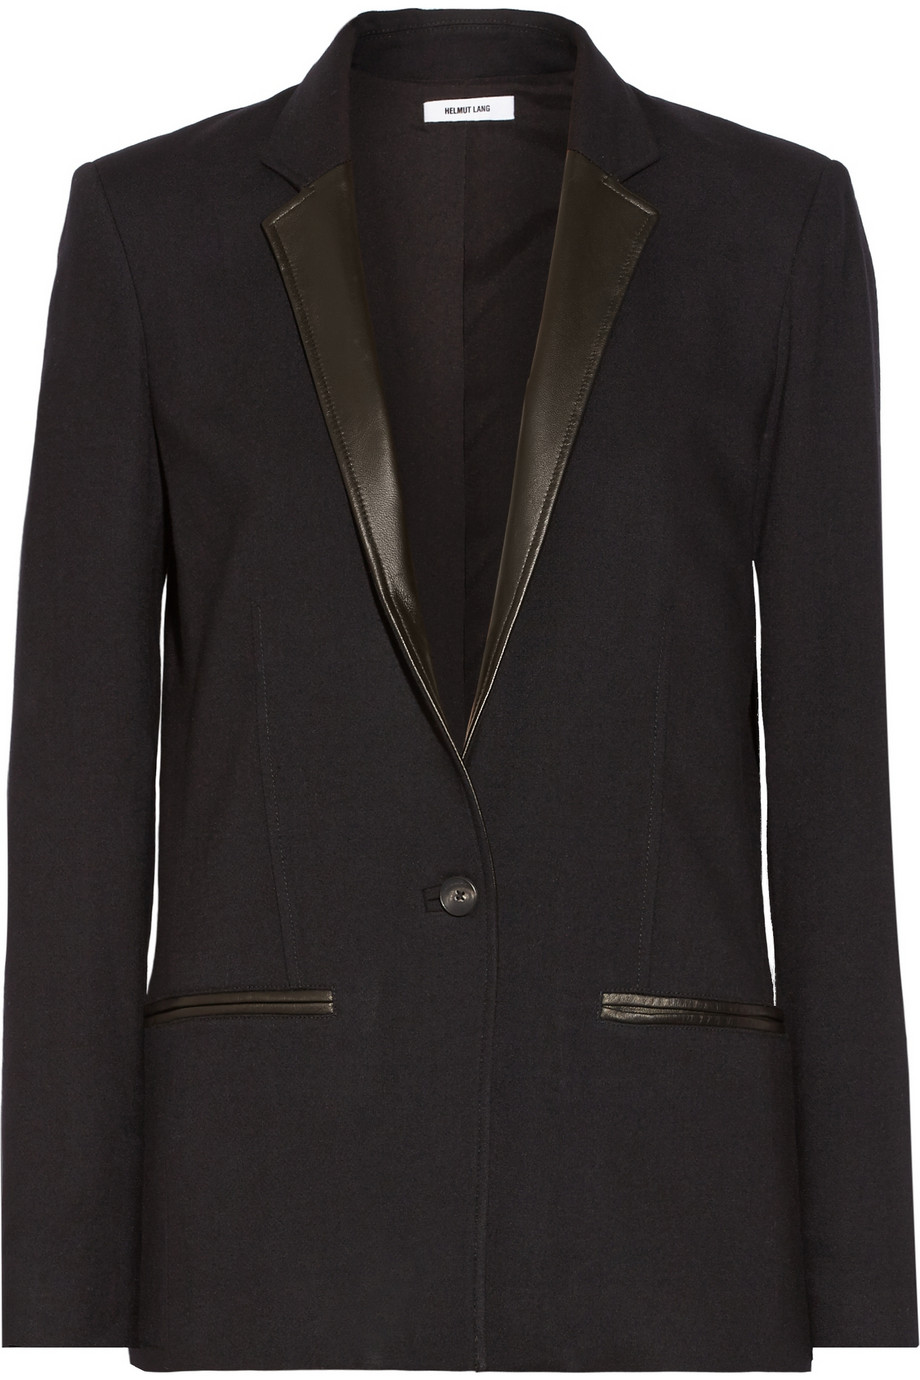 Helmut Lang Noa leather-trimmed cady blazer – 60% at THE OUTNET.COM